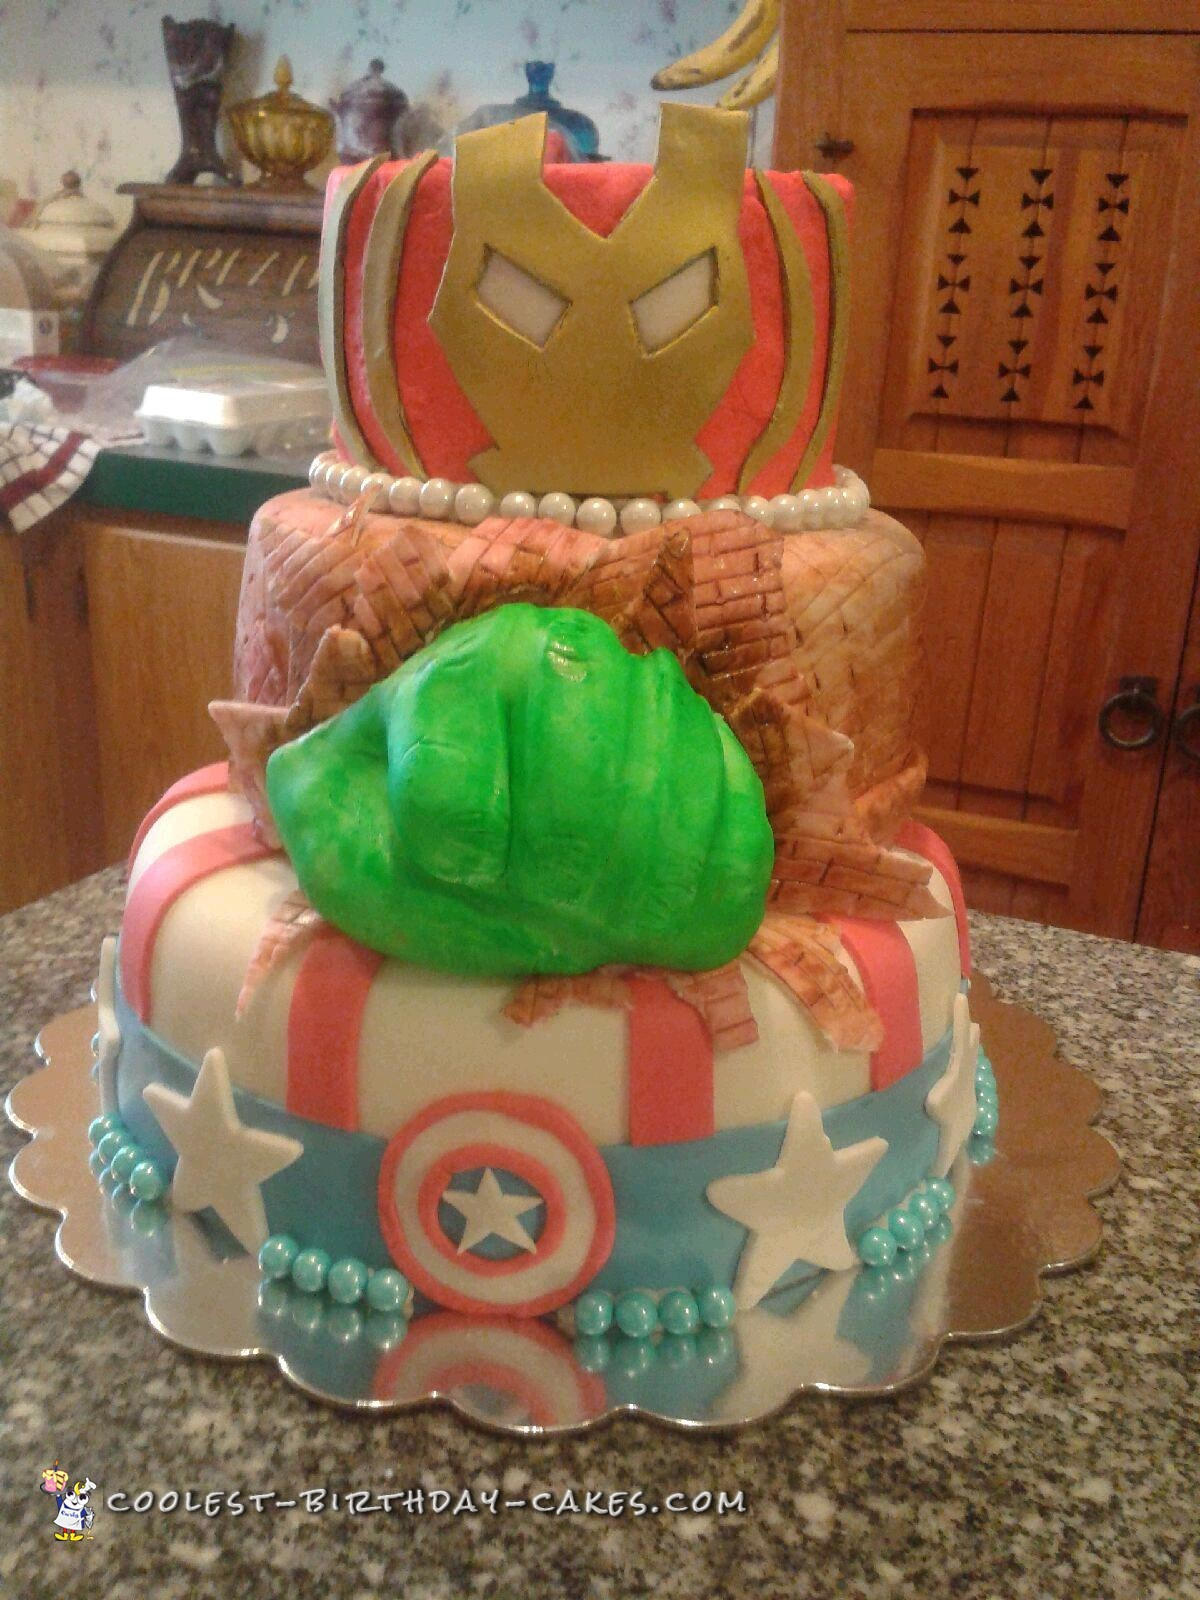 My Grandson Got All Excited When It Was His Big Boy Birthday 5 He Chose Top Three Super Heroes For Cake